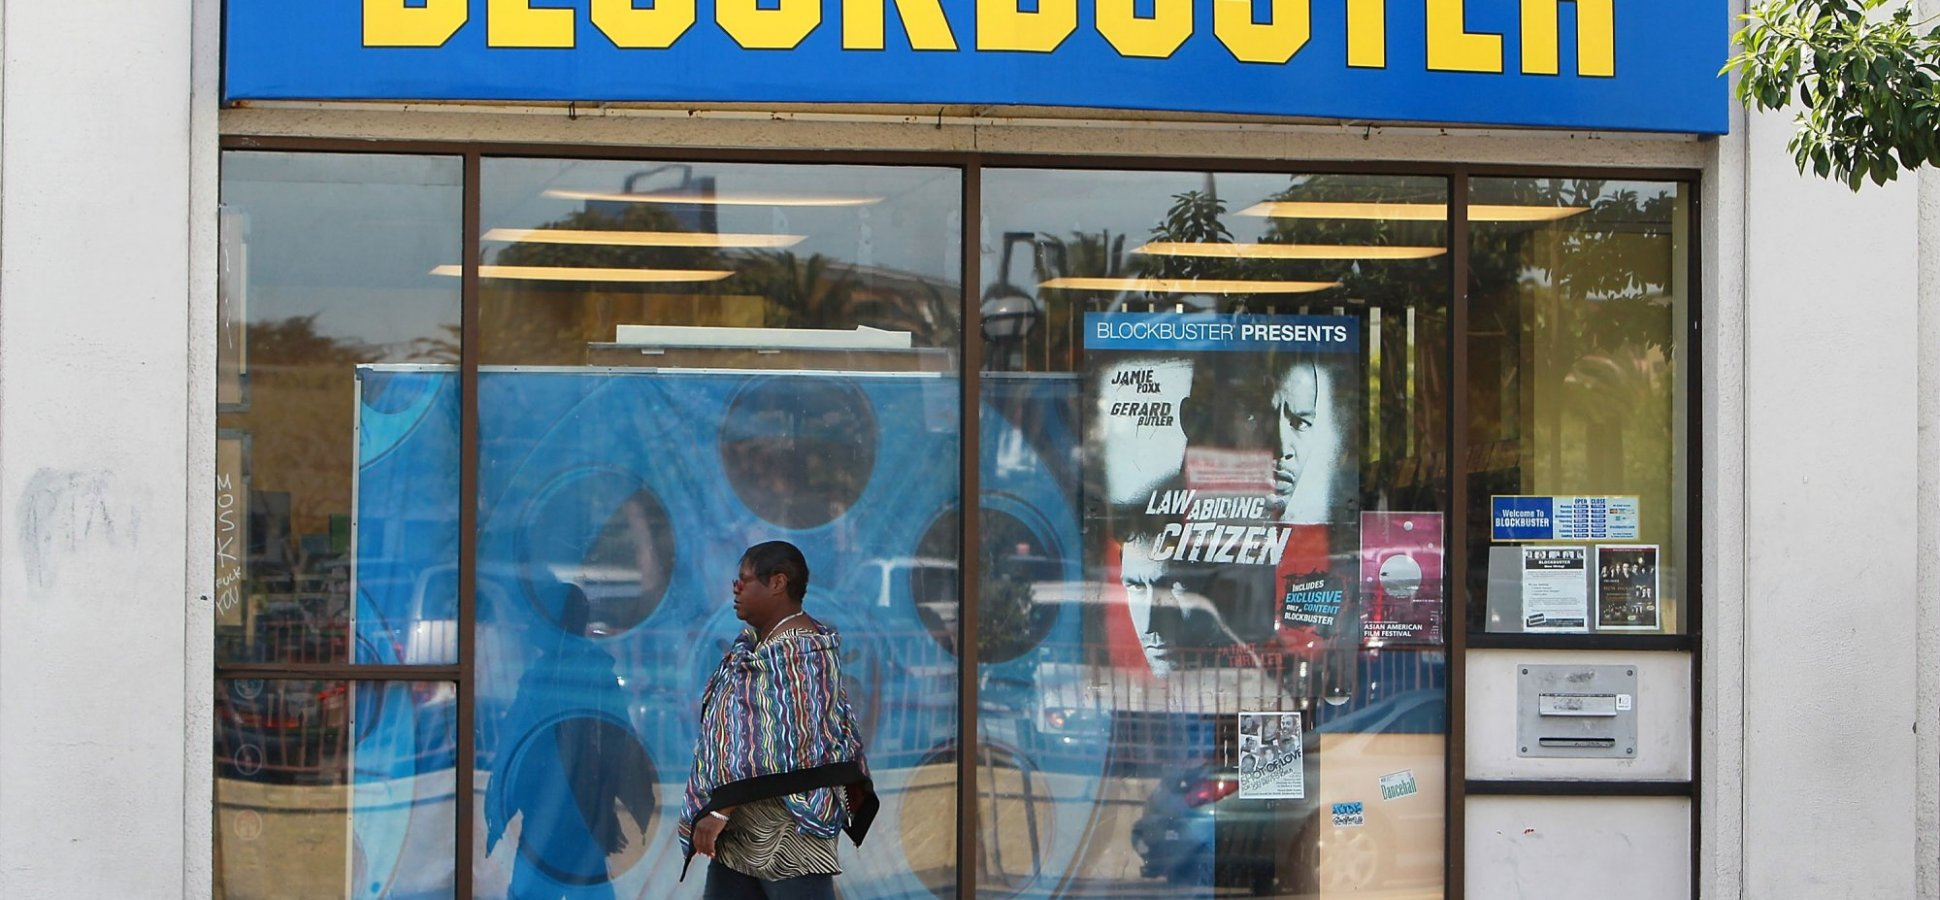 Blockbuster Had A Brilliant Strategy To Beat Netflix, But Then Failed To Survive Victory